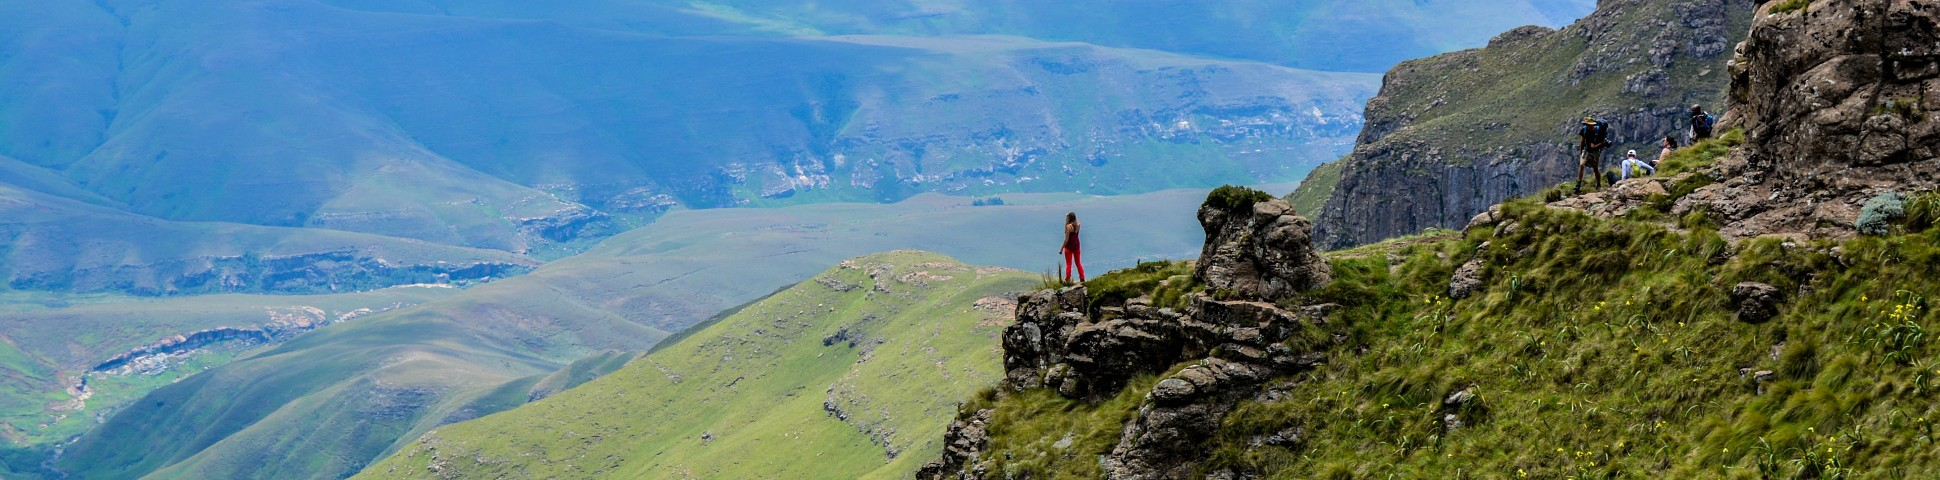 South Africa Hiking Tour